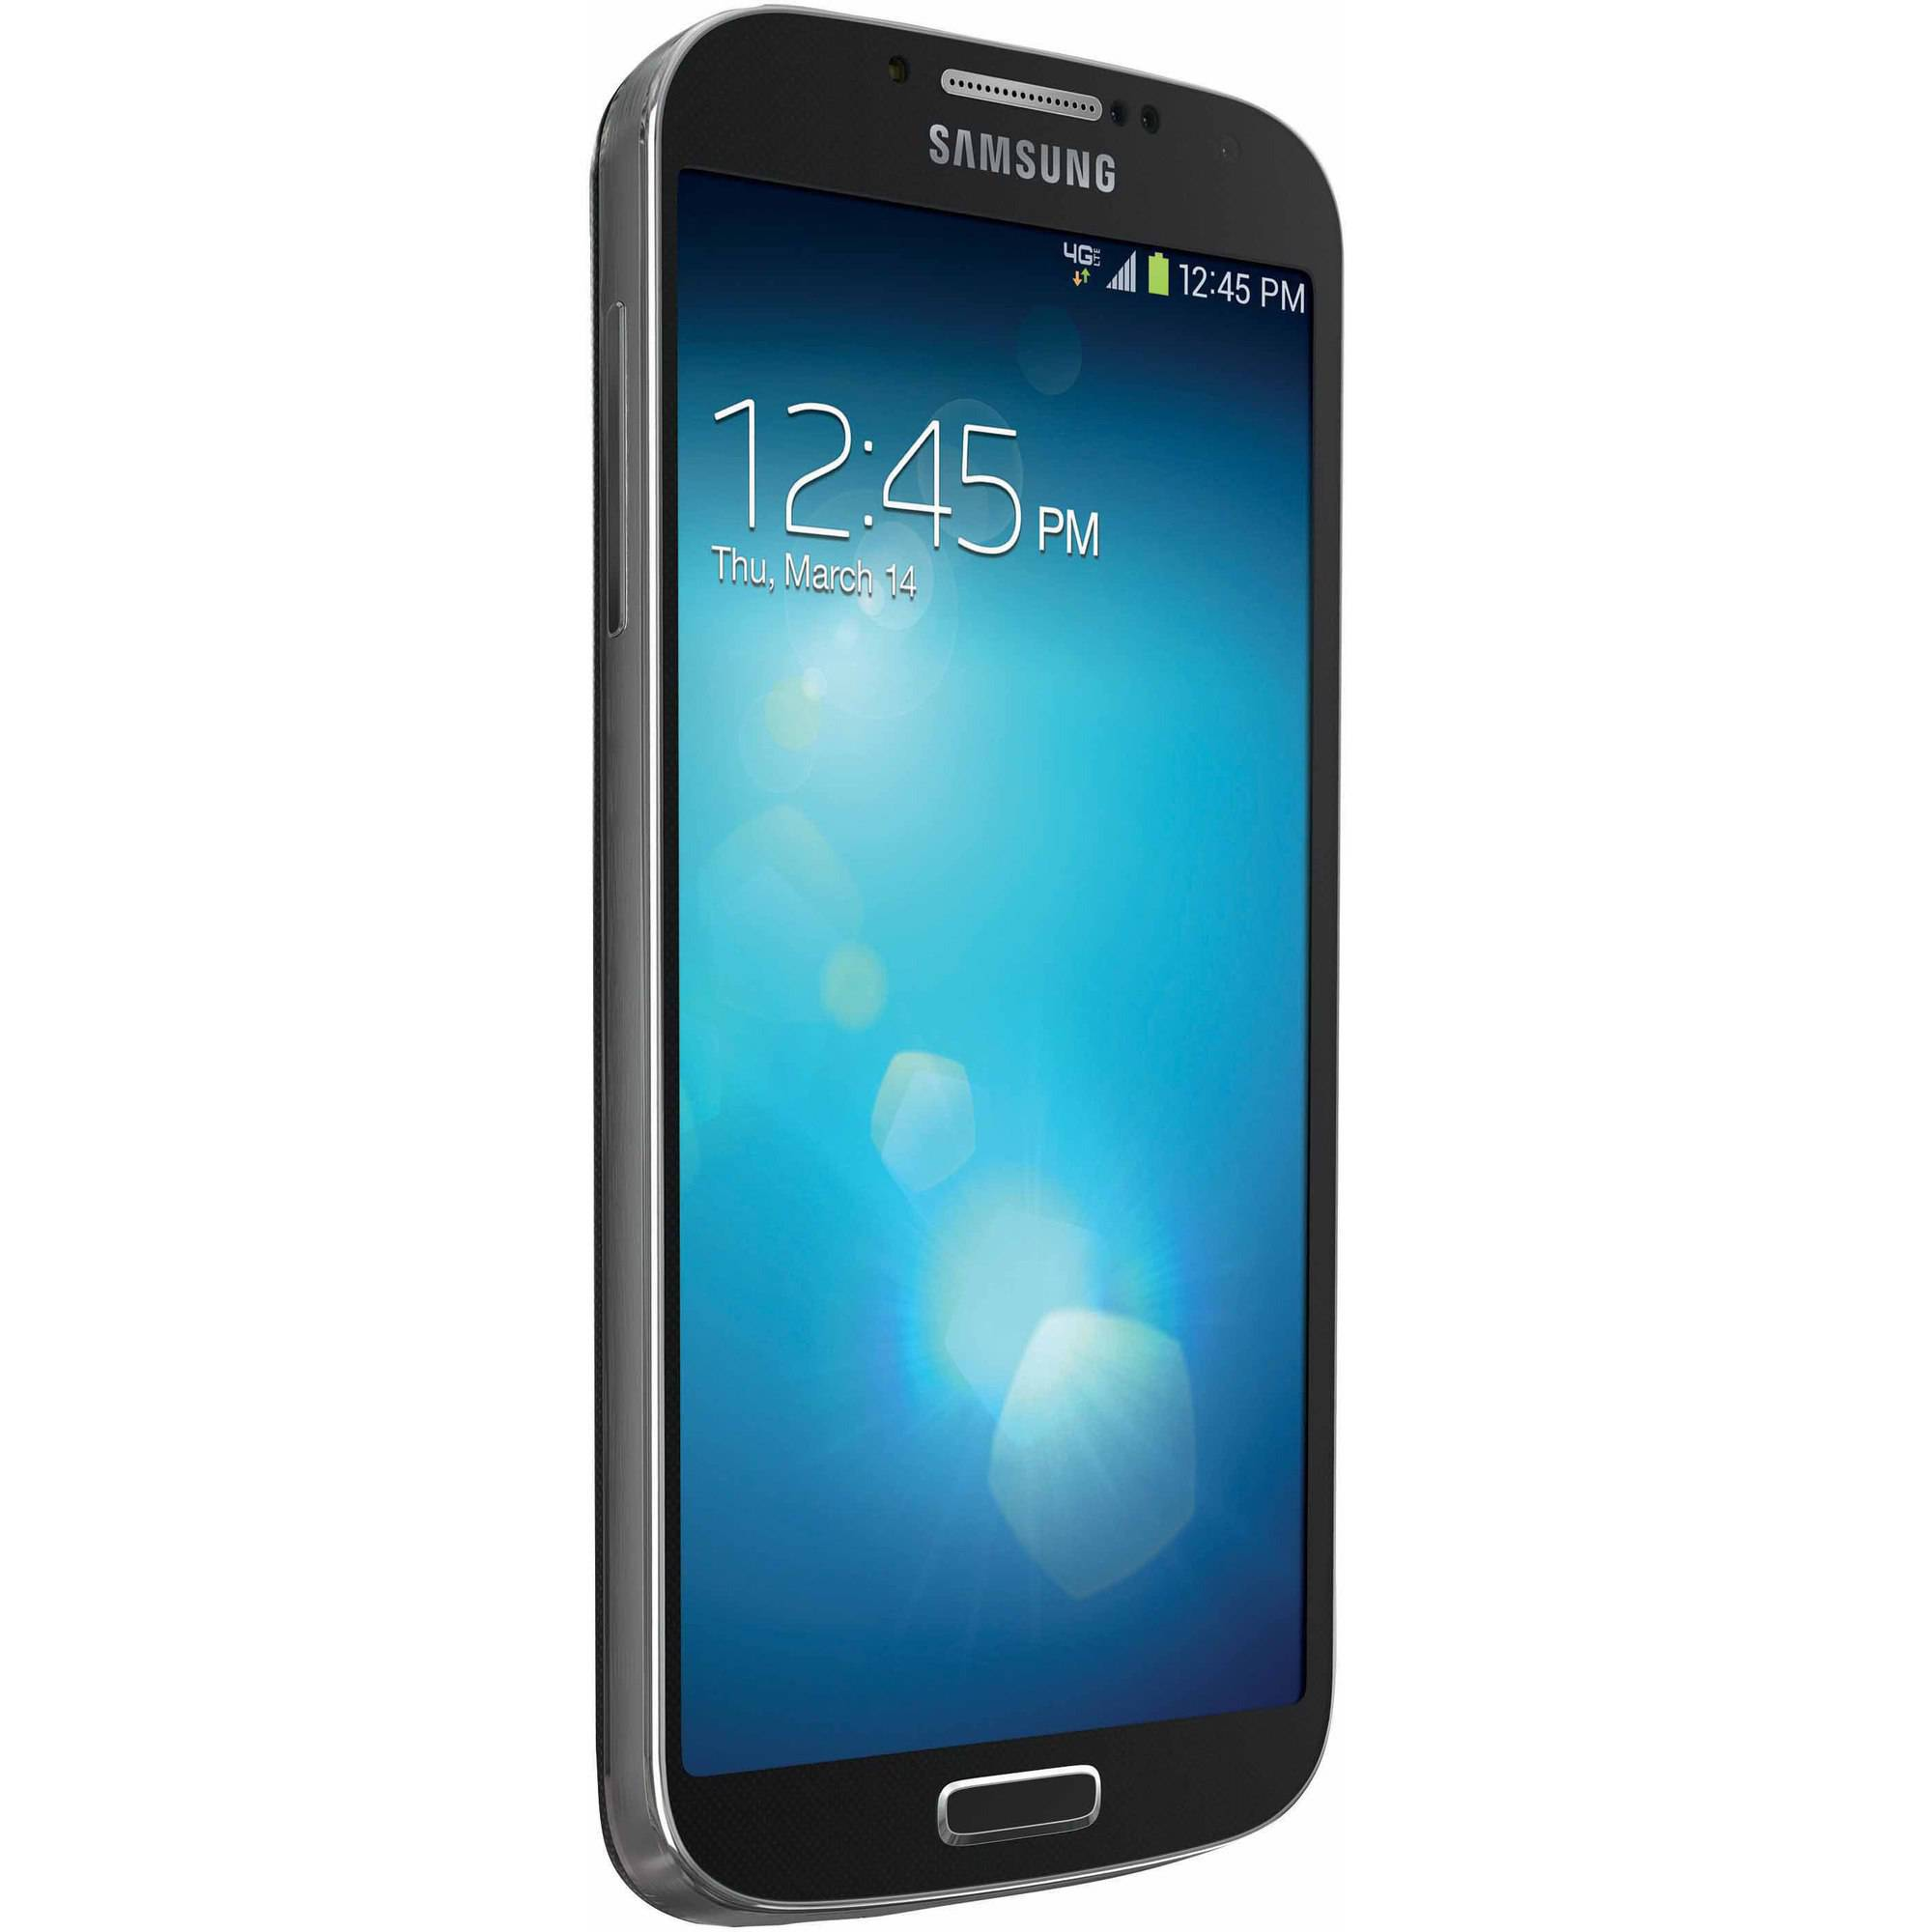 Samsung t245g (TracFone) Prepaid Cell Phone | Staples®